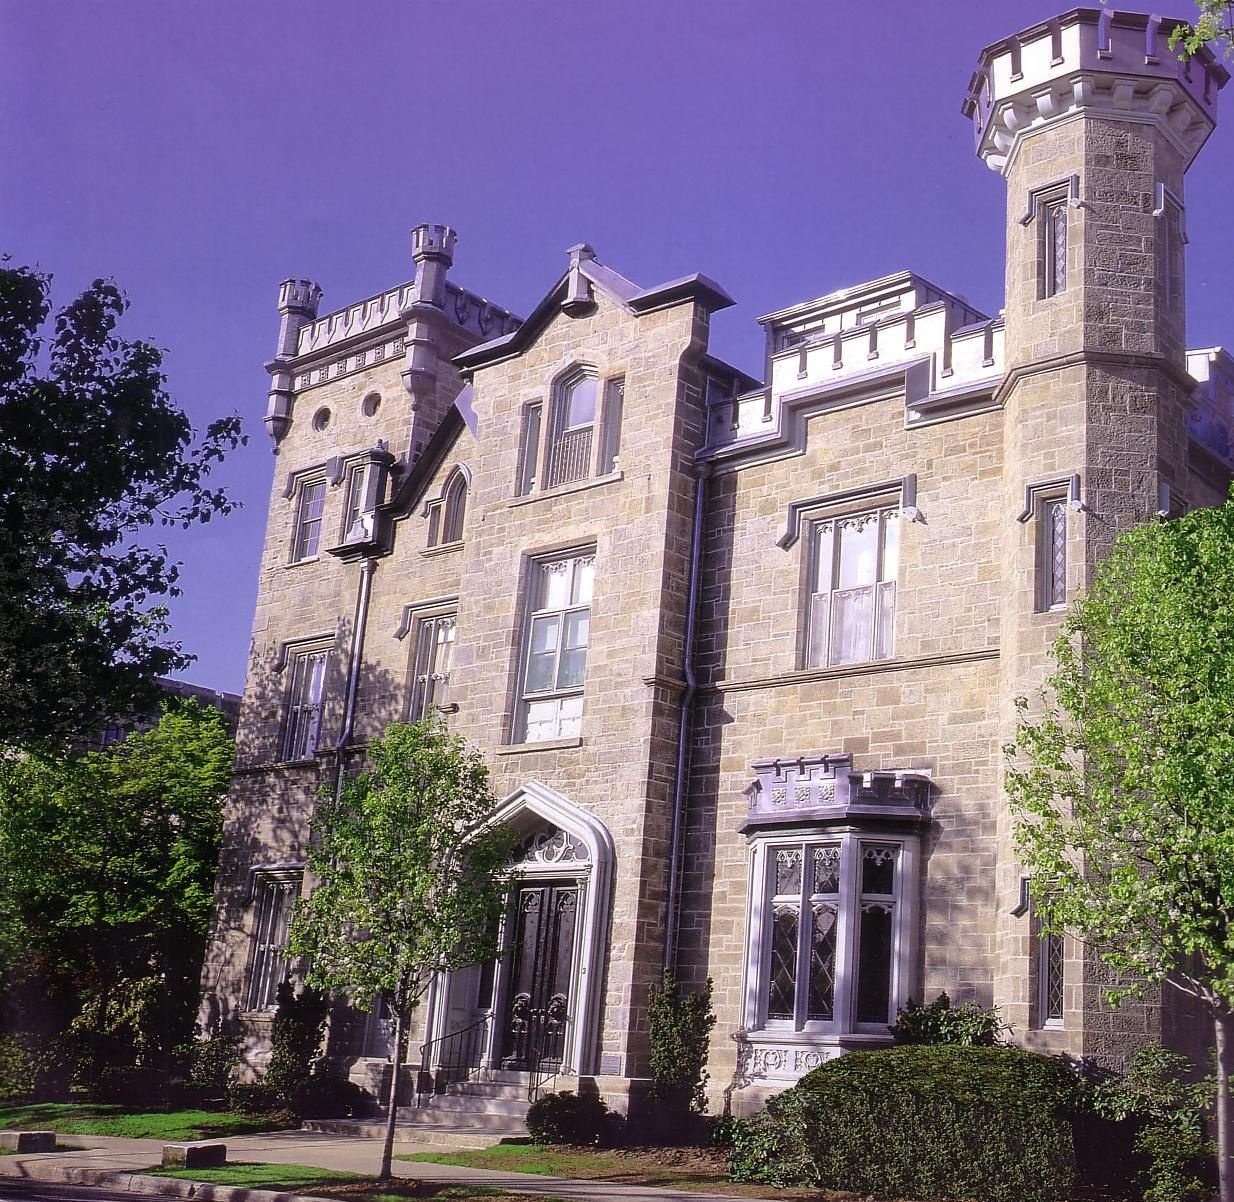 Exterior View of Leland Castle